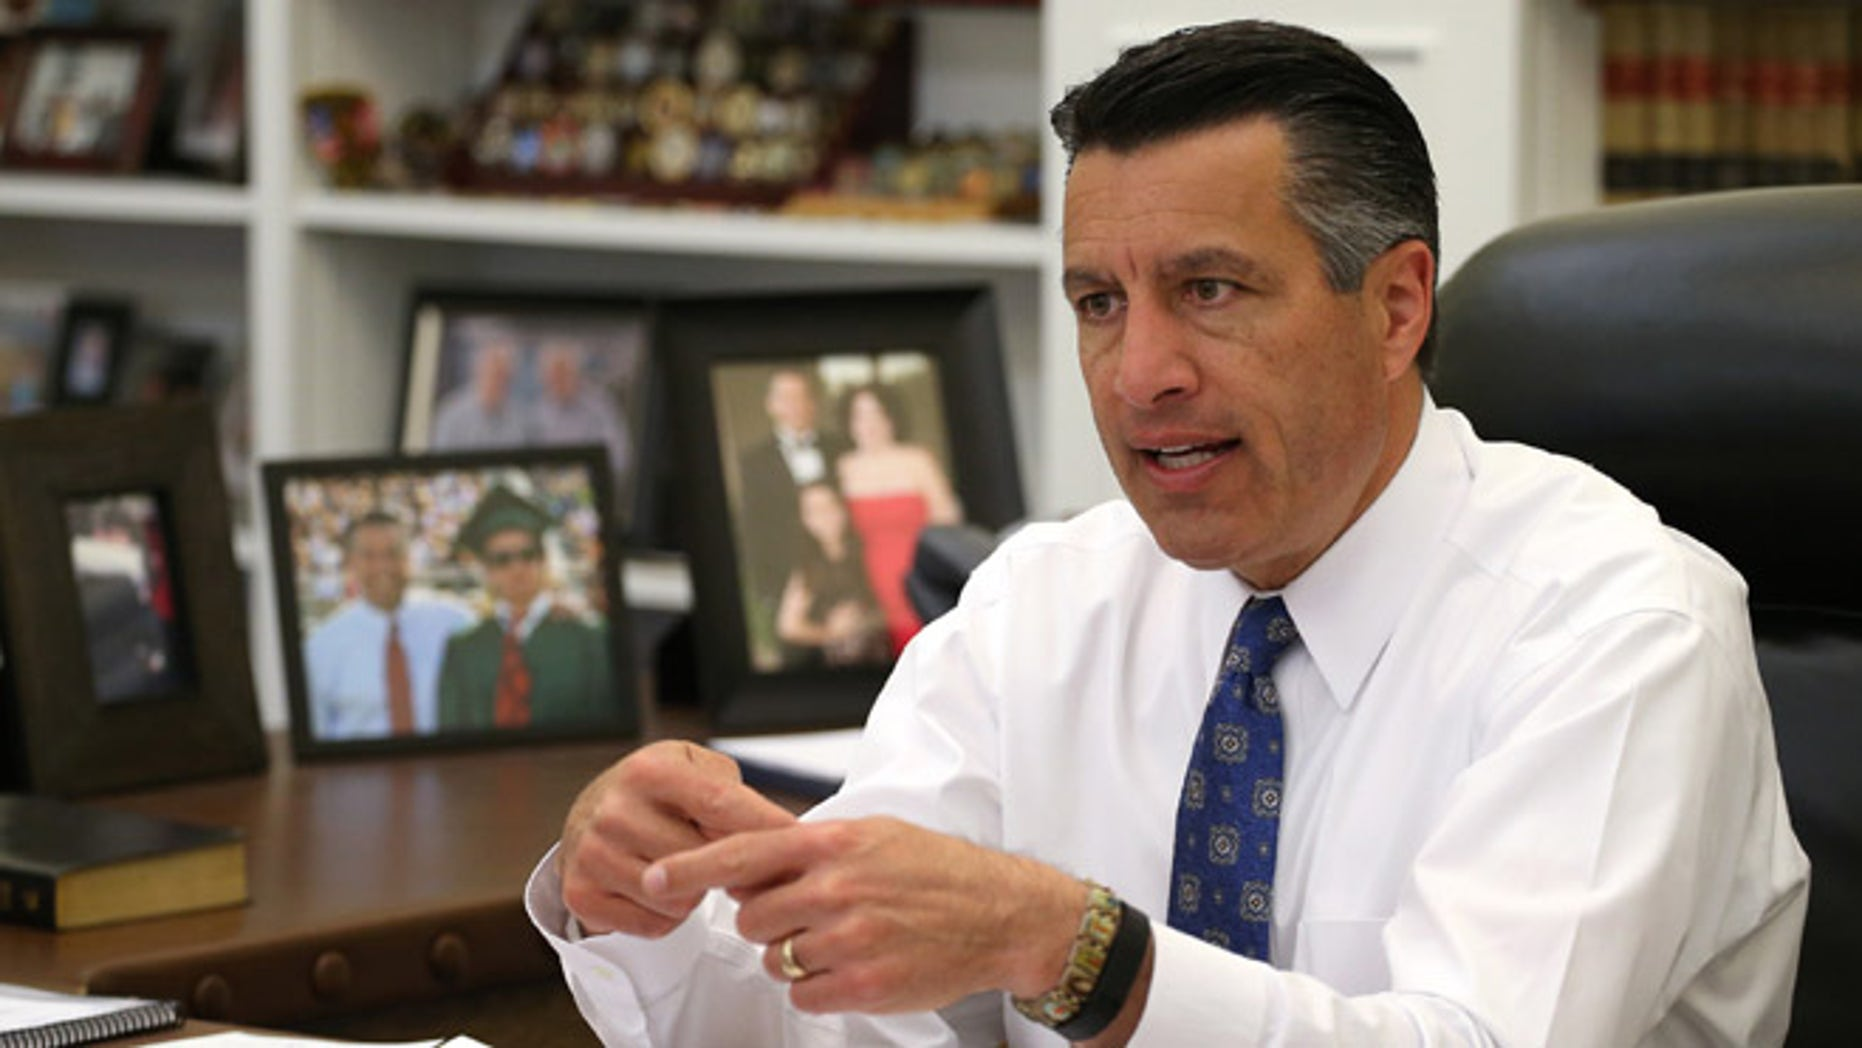 Nevada Gov. Brian Sandoval talks about the ongoing legislative session from his office at the Capitol in Carson City, Nev., on Friday, April 17, 2015. Sandoval says he's optimistic that lawmakers will reach a deal on the state's budget. (AP Photo/Cathleen Allison)